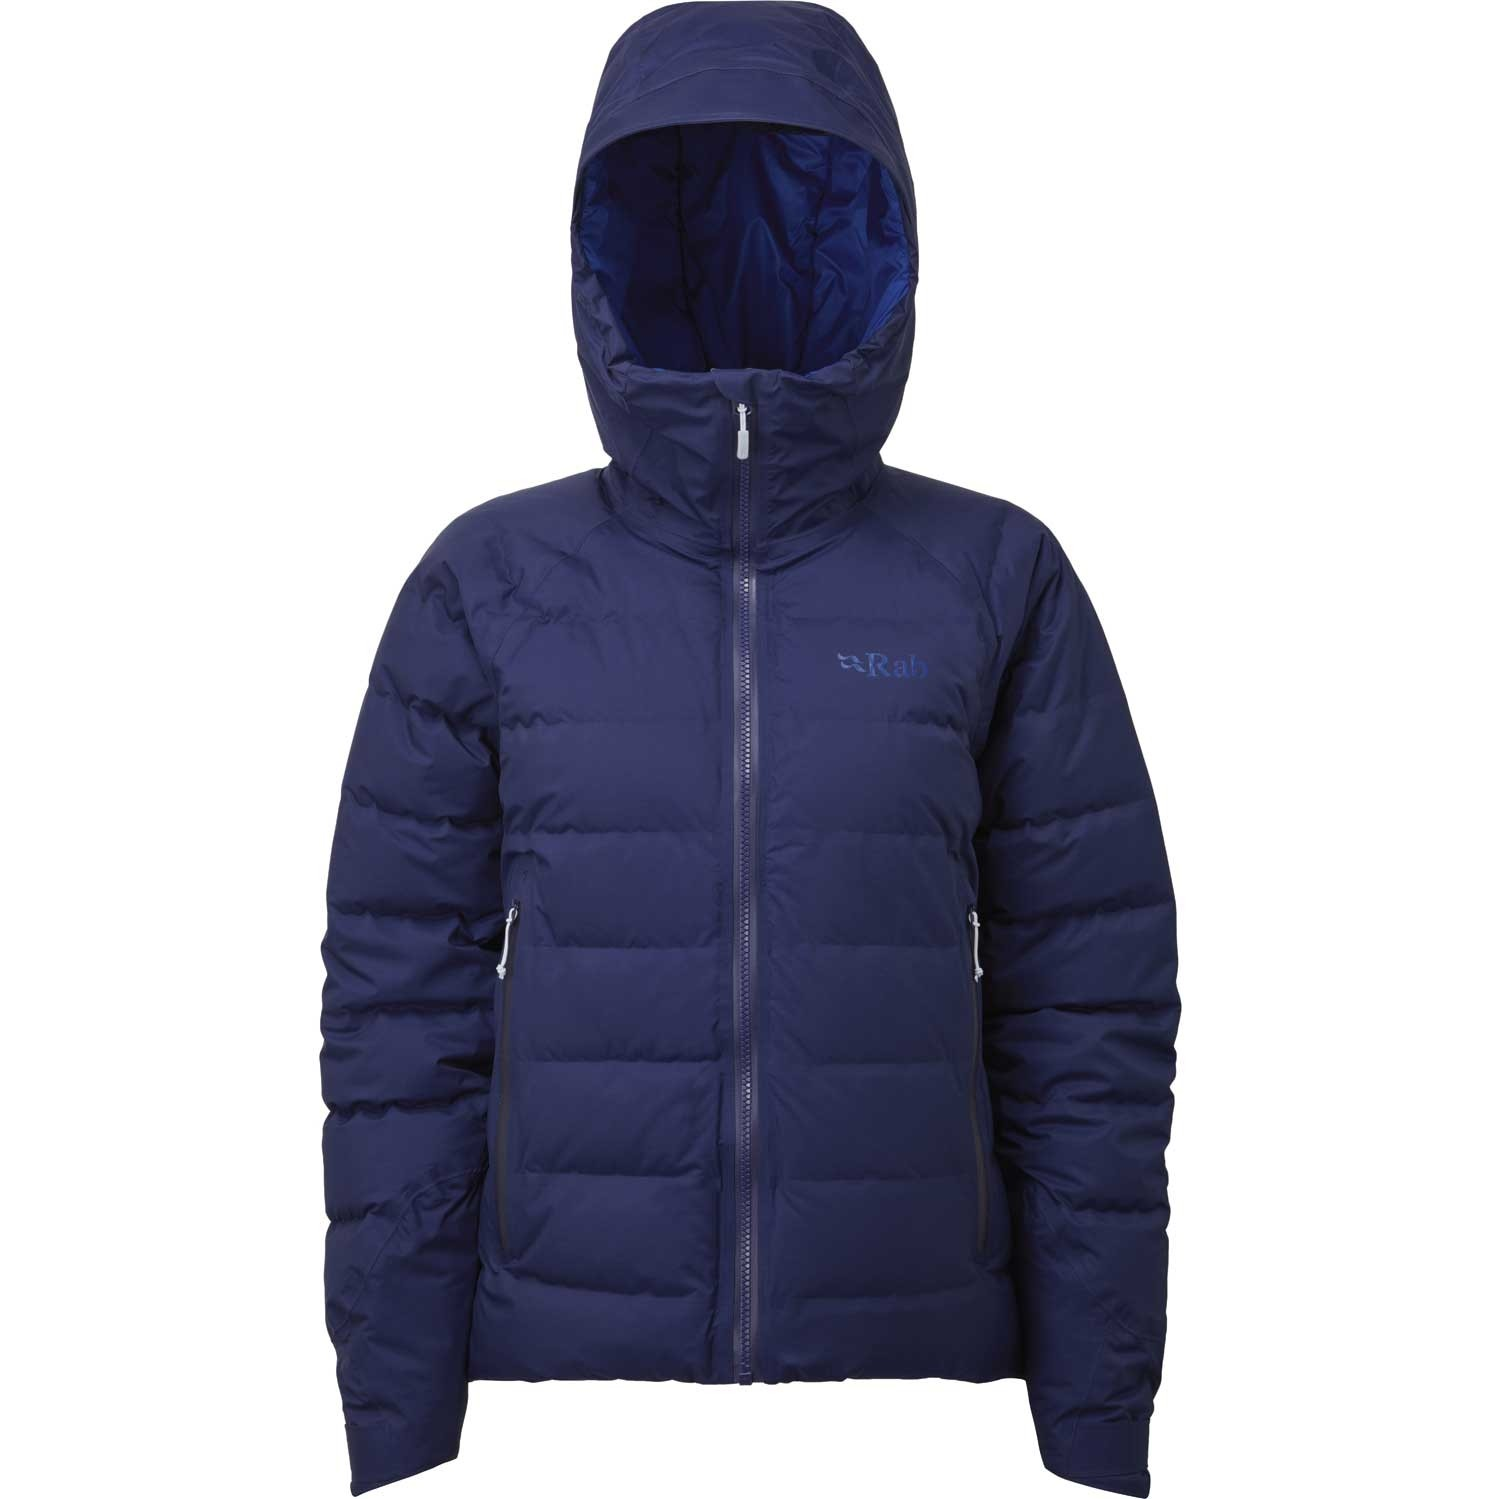 Rab Valiance Women's Down Jacket - Blueprint